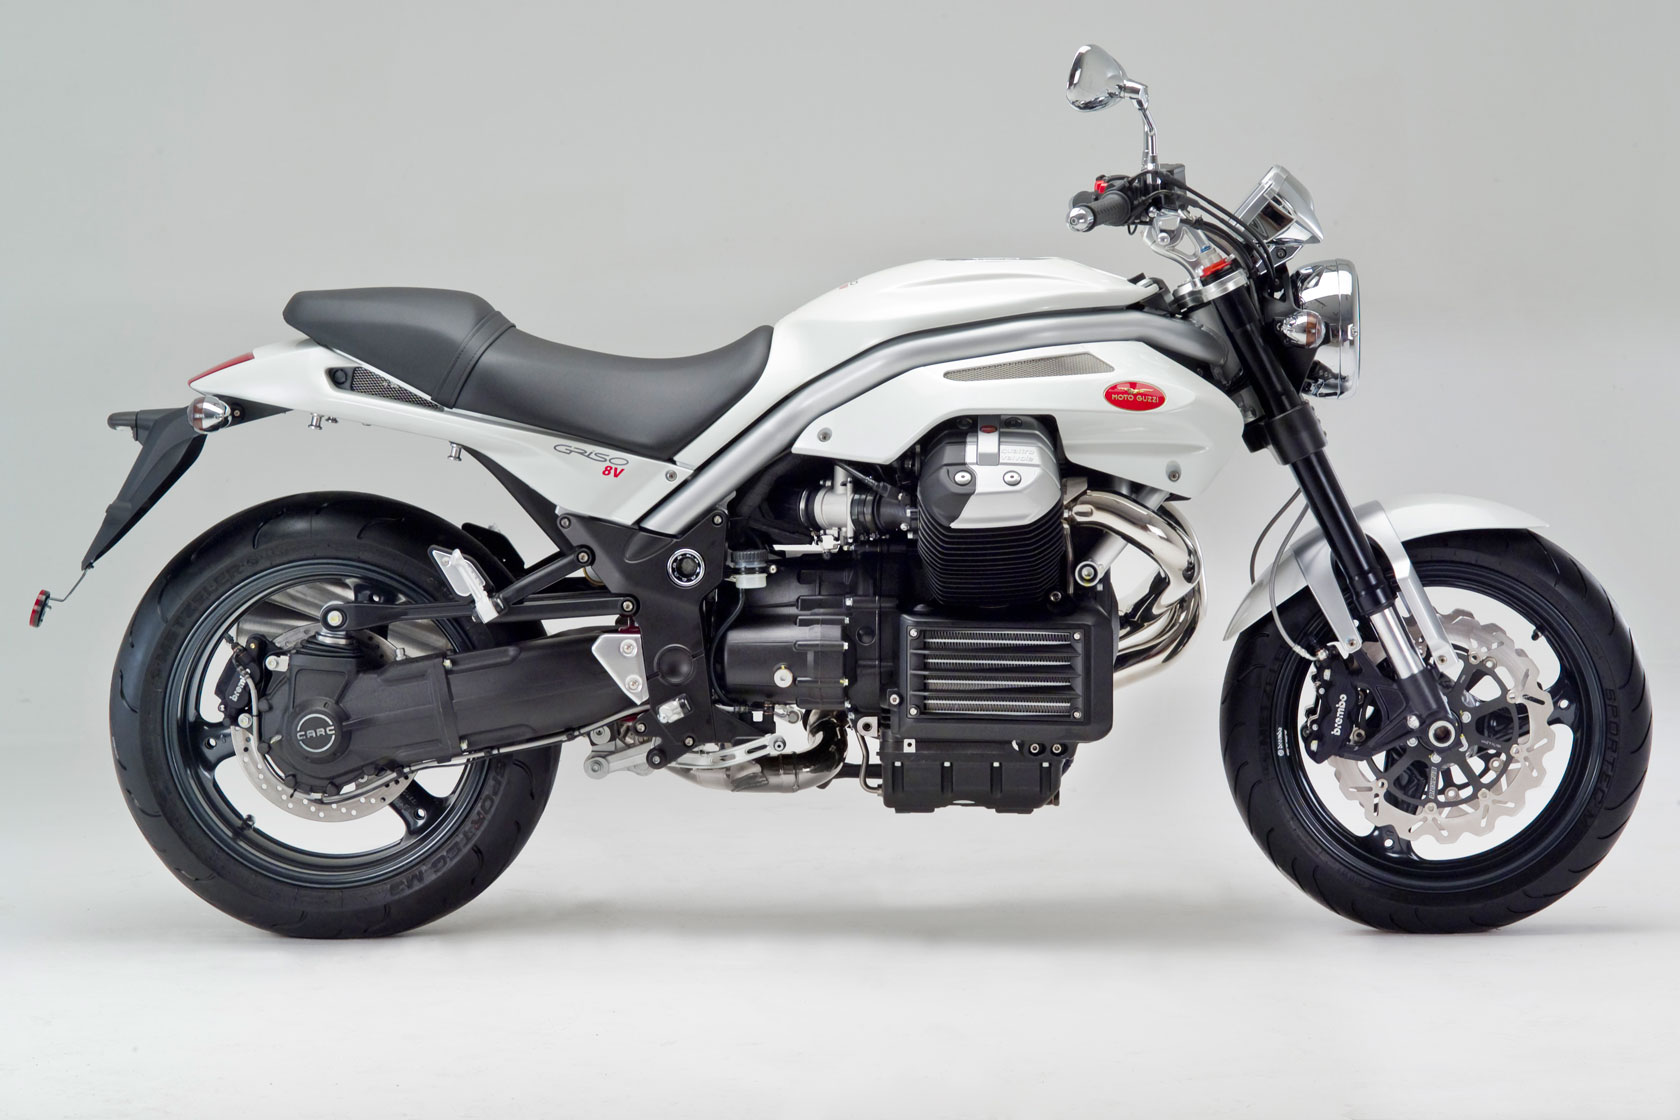 Moto guzzi griso photo - 10